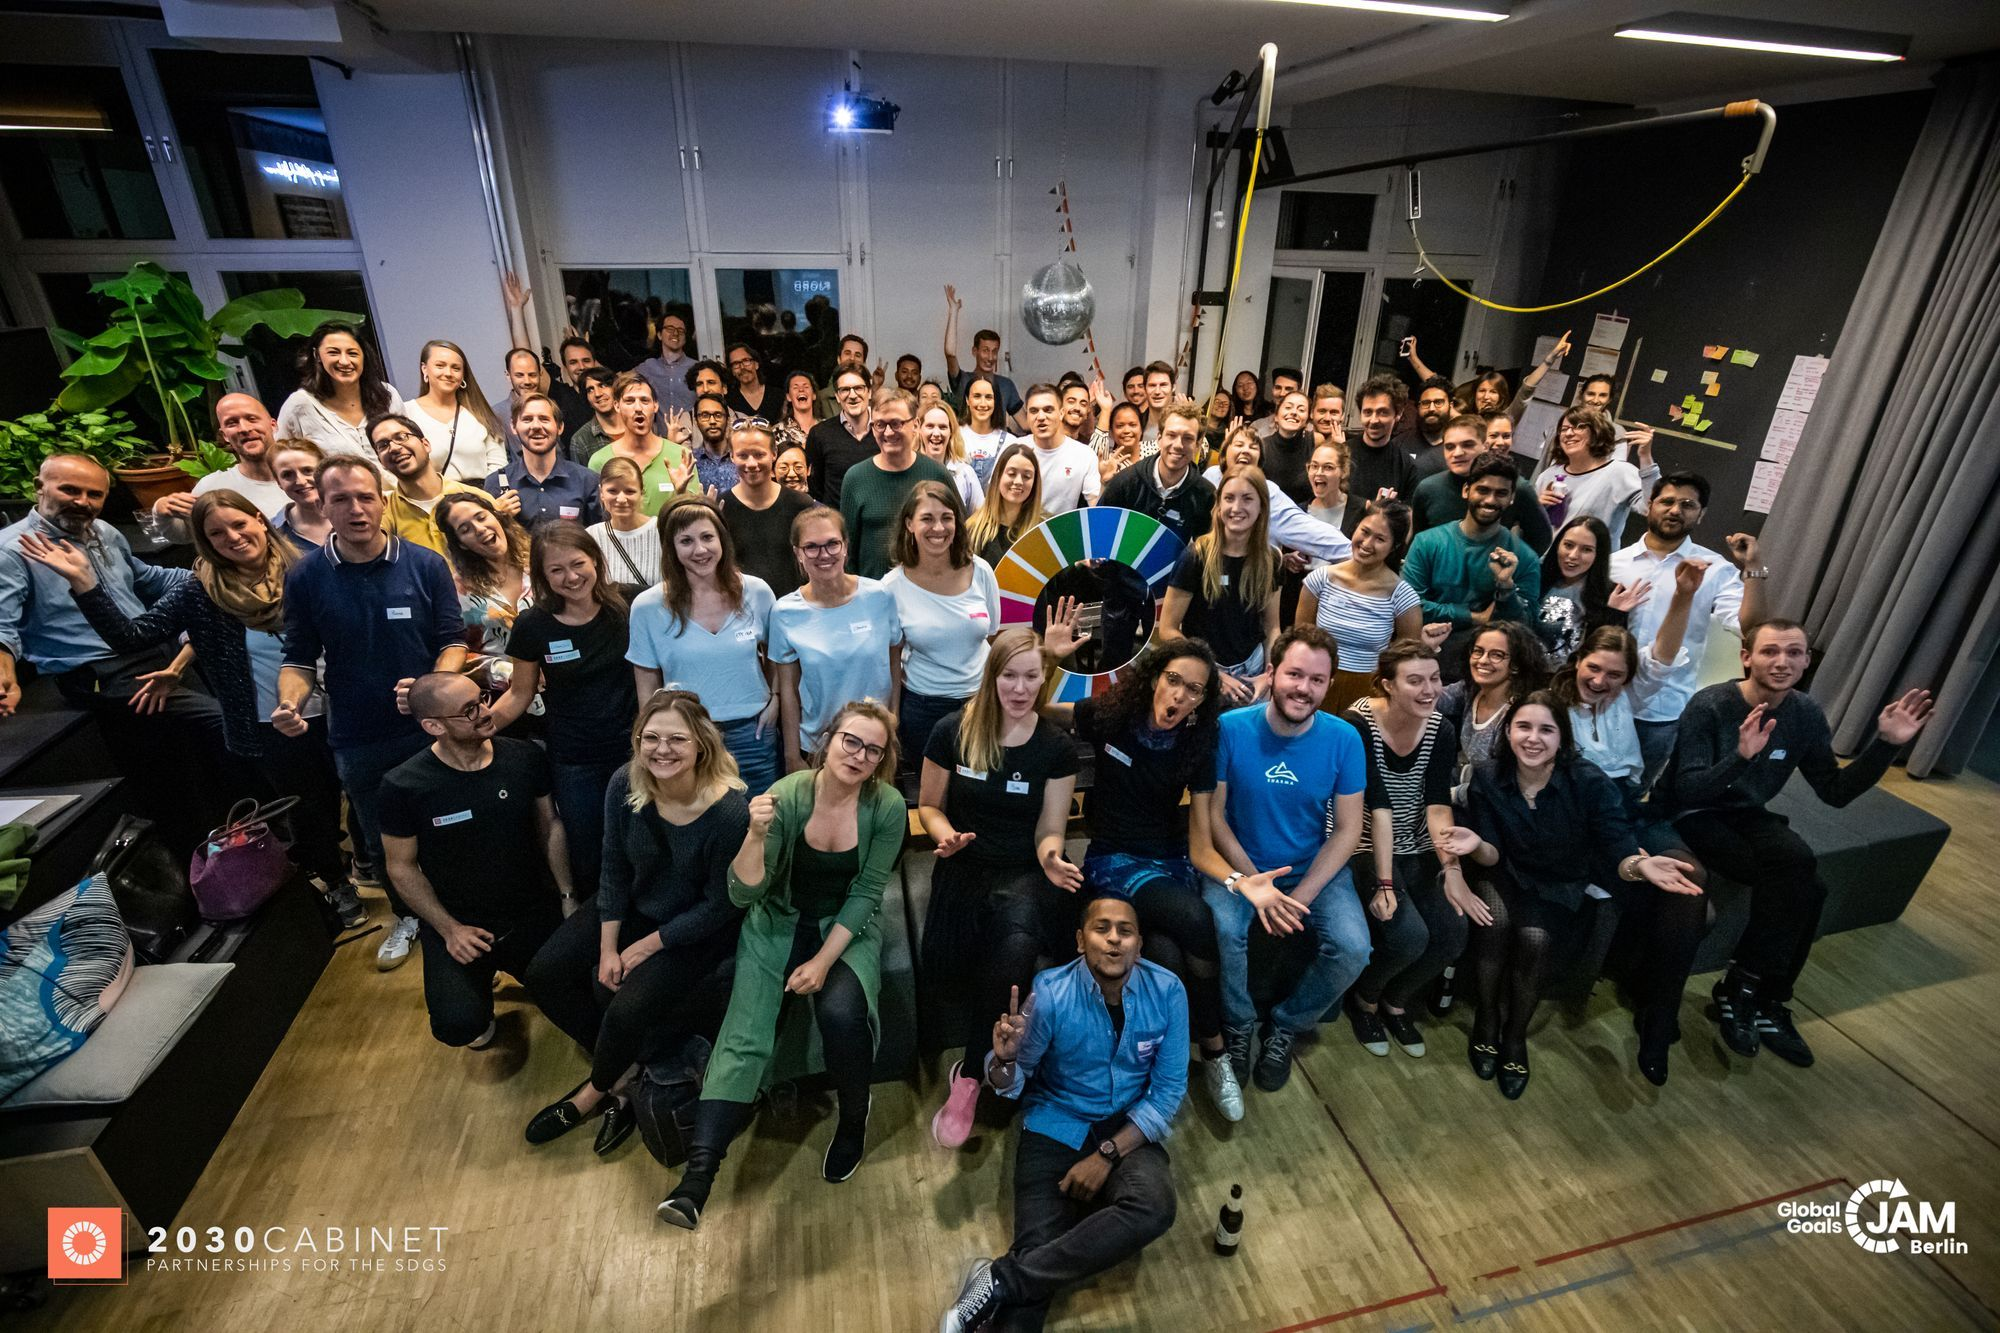 Picture from Global Goals Jam Berlin, 2019 showing participants from different sectors coming together for the two-day event